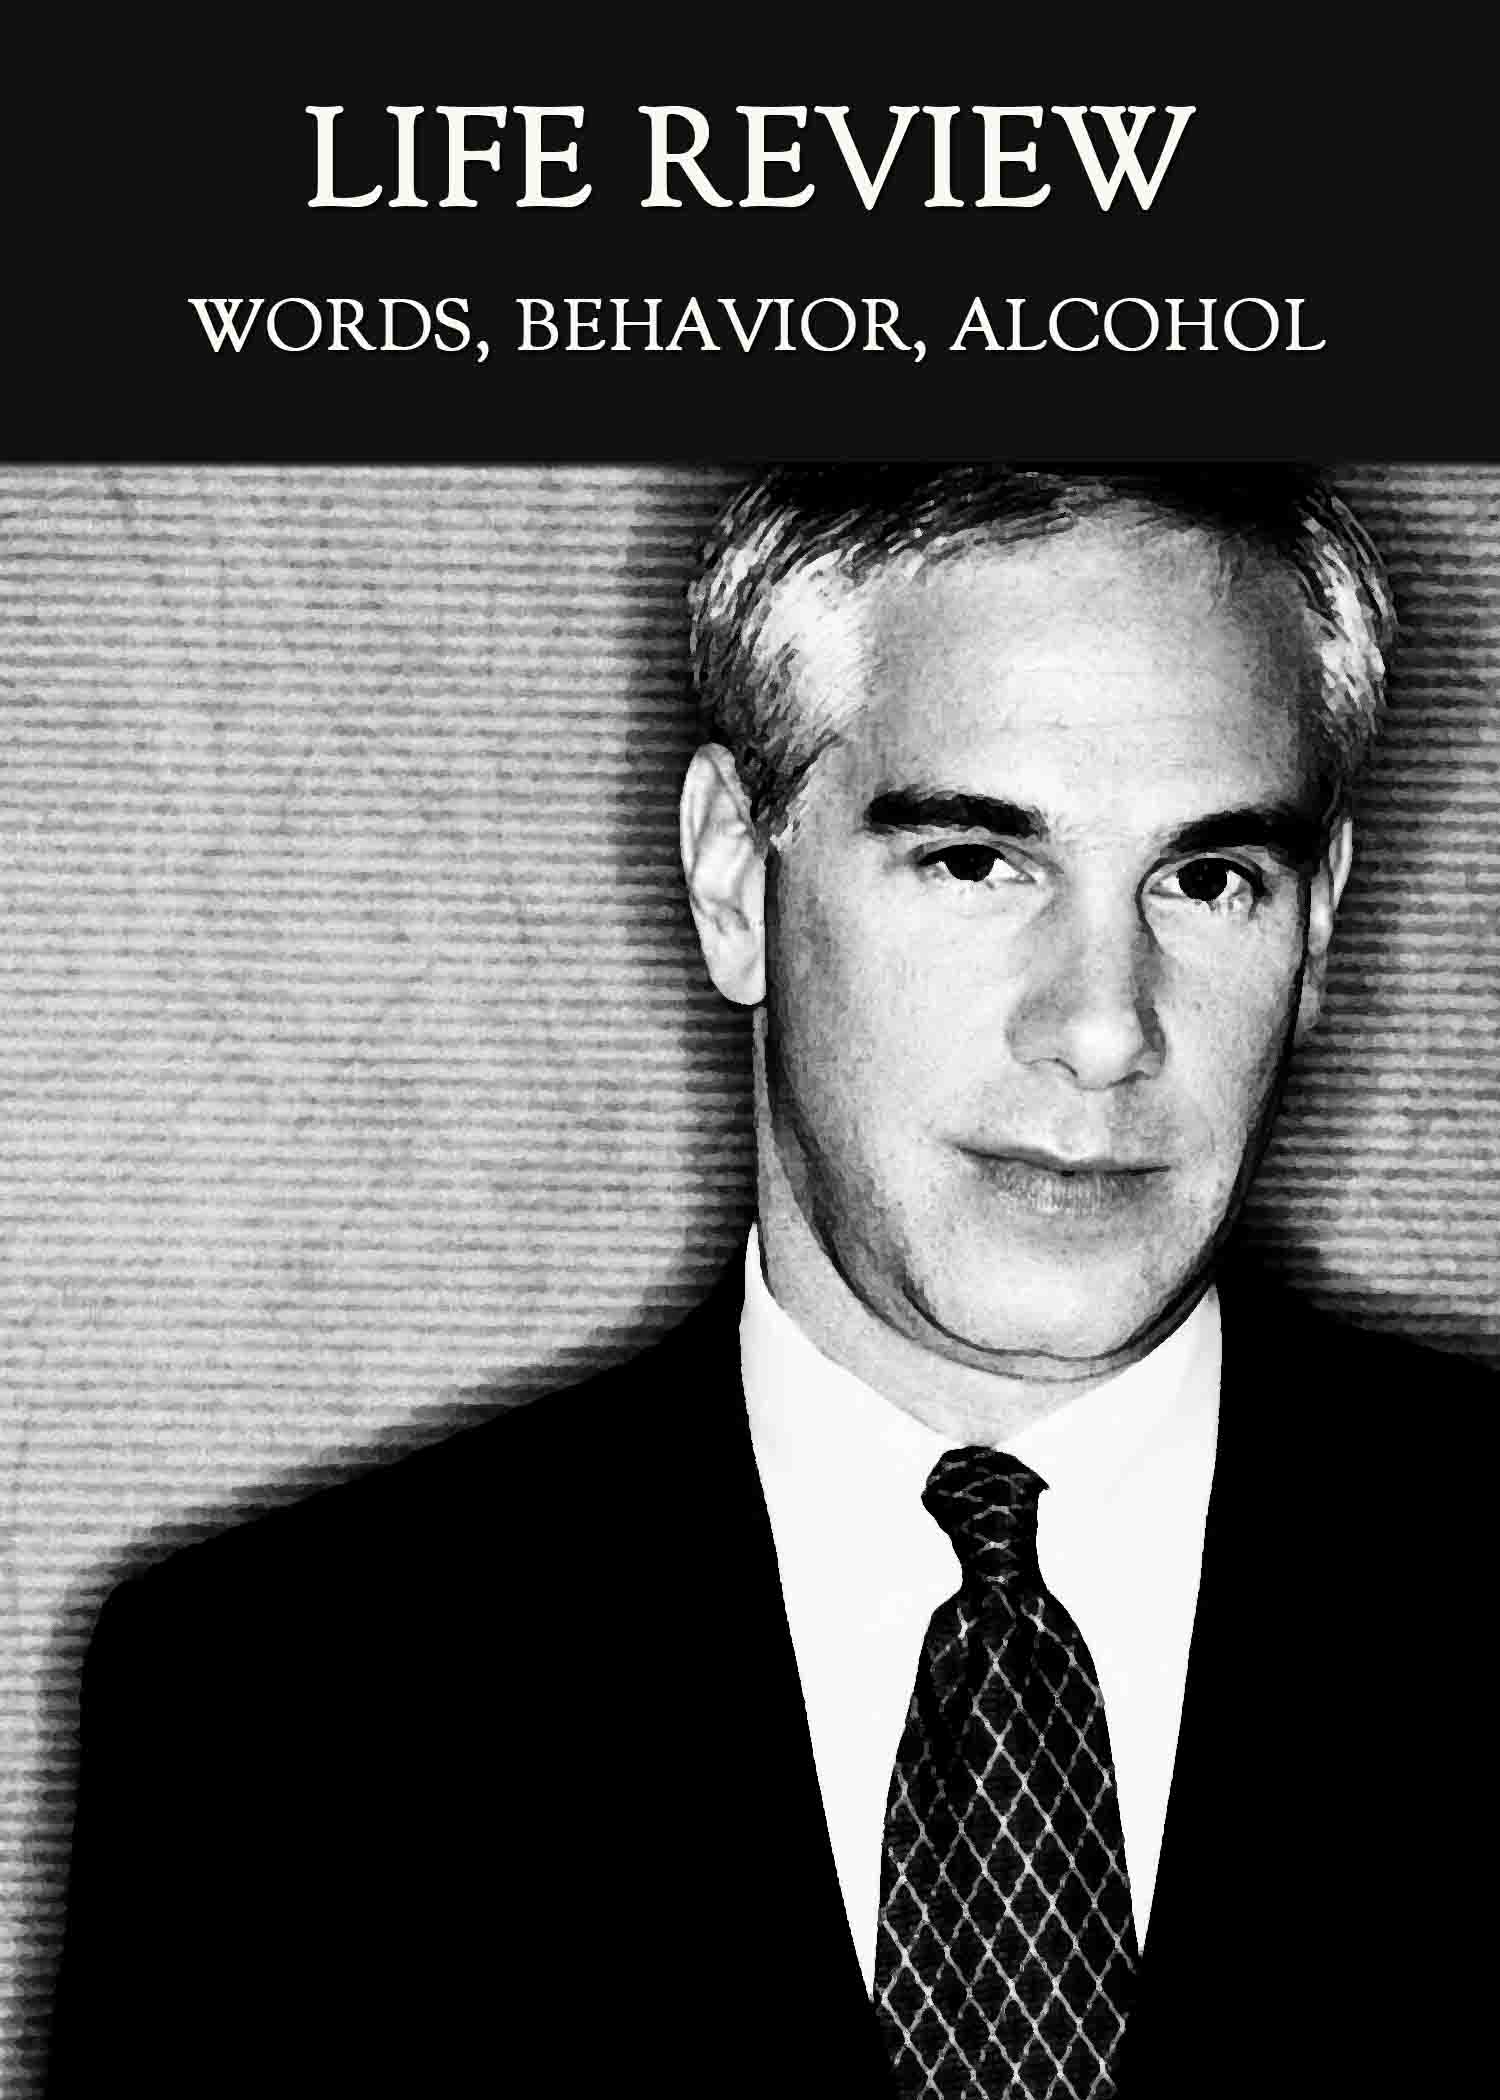 a journal of the life and complaints of an alcoholic Alcohol research: current reviews is the peer-reviewed journal of the national institute on alcohol abuse and alcoholism each issue presents an in-depth review of an .